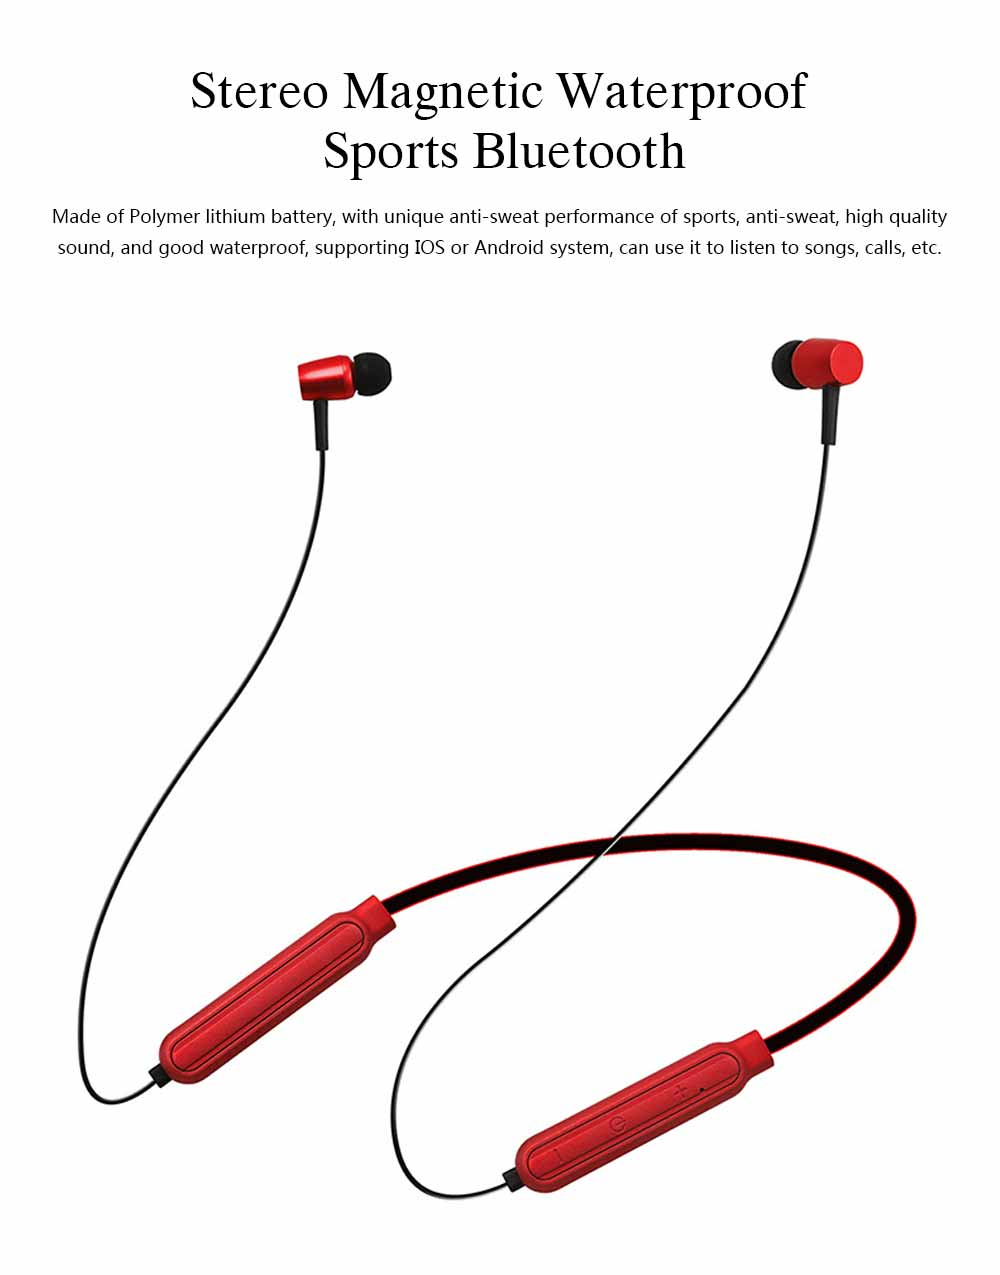 Wireless Bluetooth Headset In-ear Earphone, Stereo Magnetic Waterproof Sports Bluetooth Headset 0